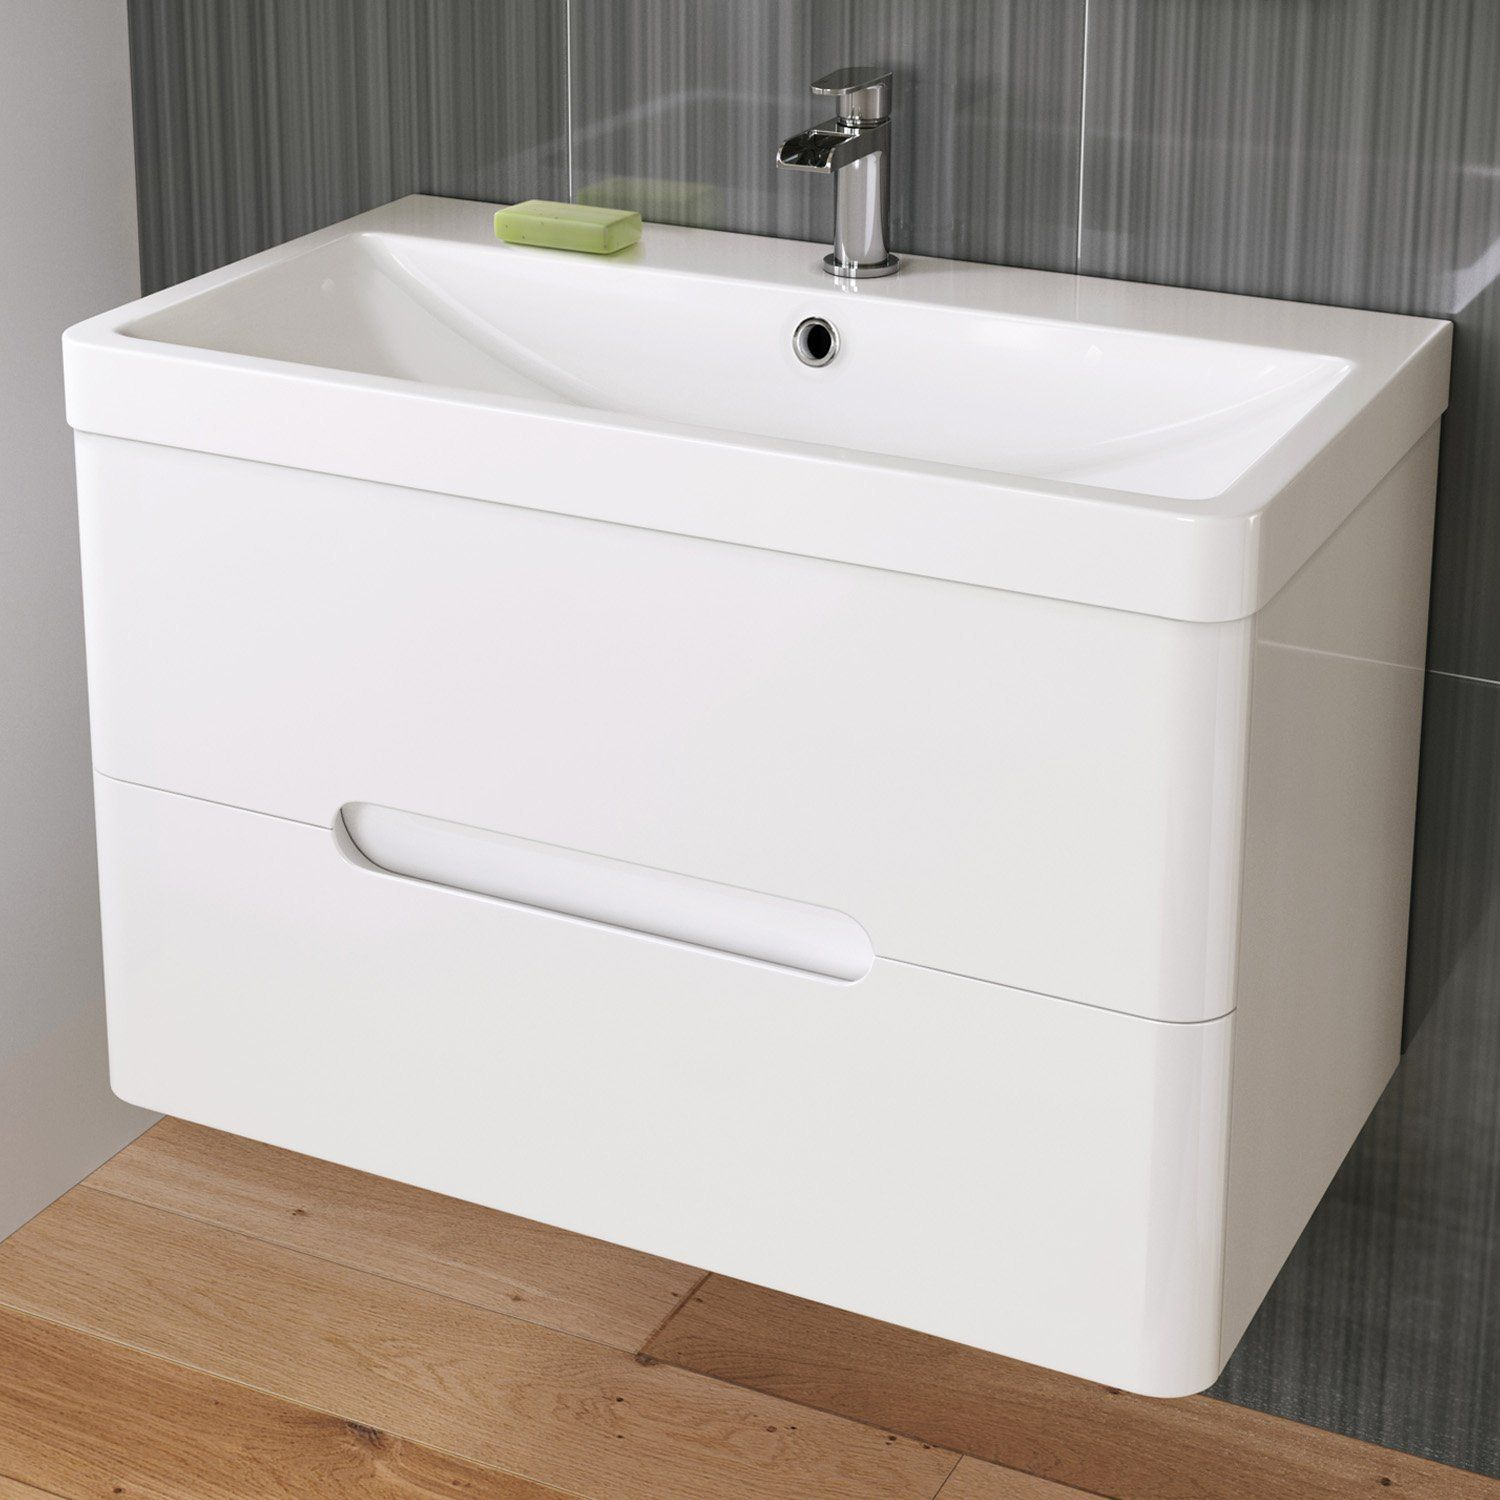 600 mm Gloss White Vanity Sink Ceramic Basin Bathroom Wall Hung